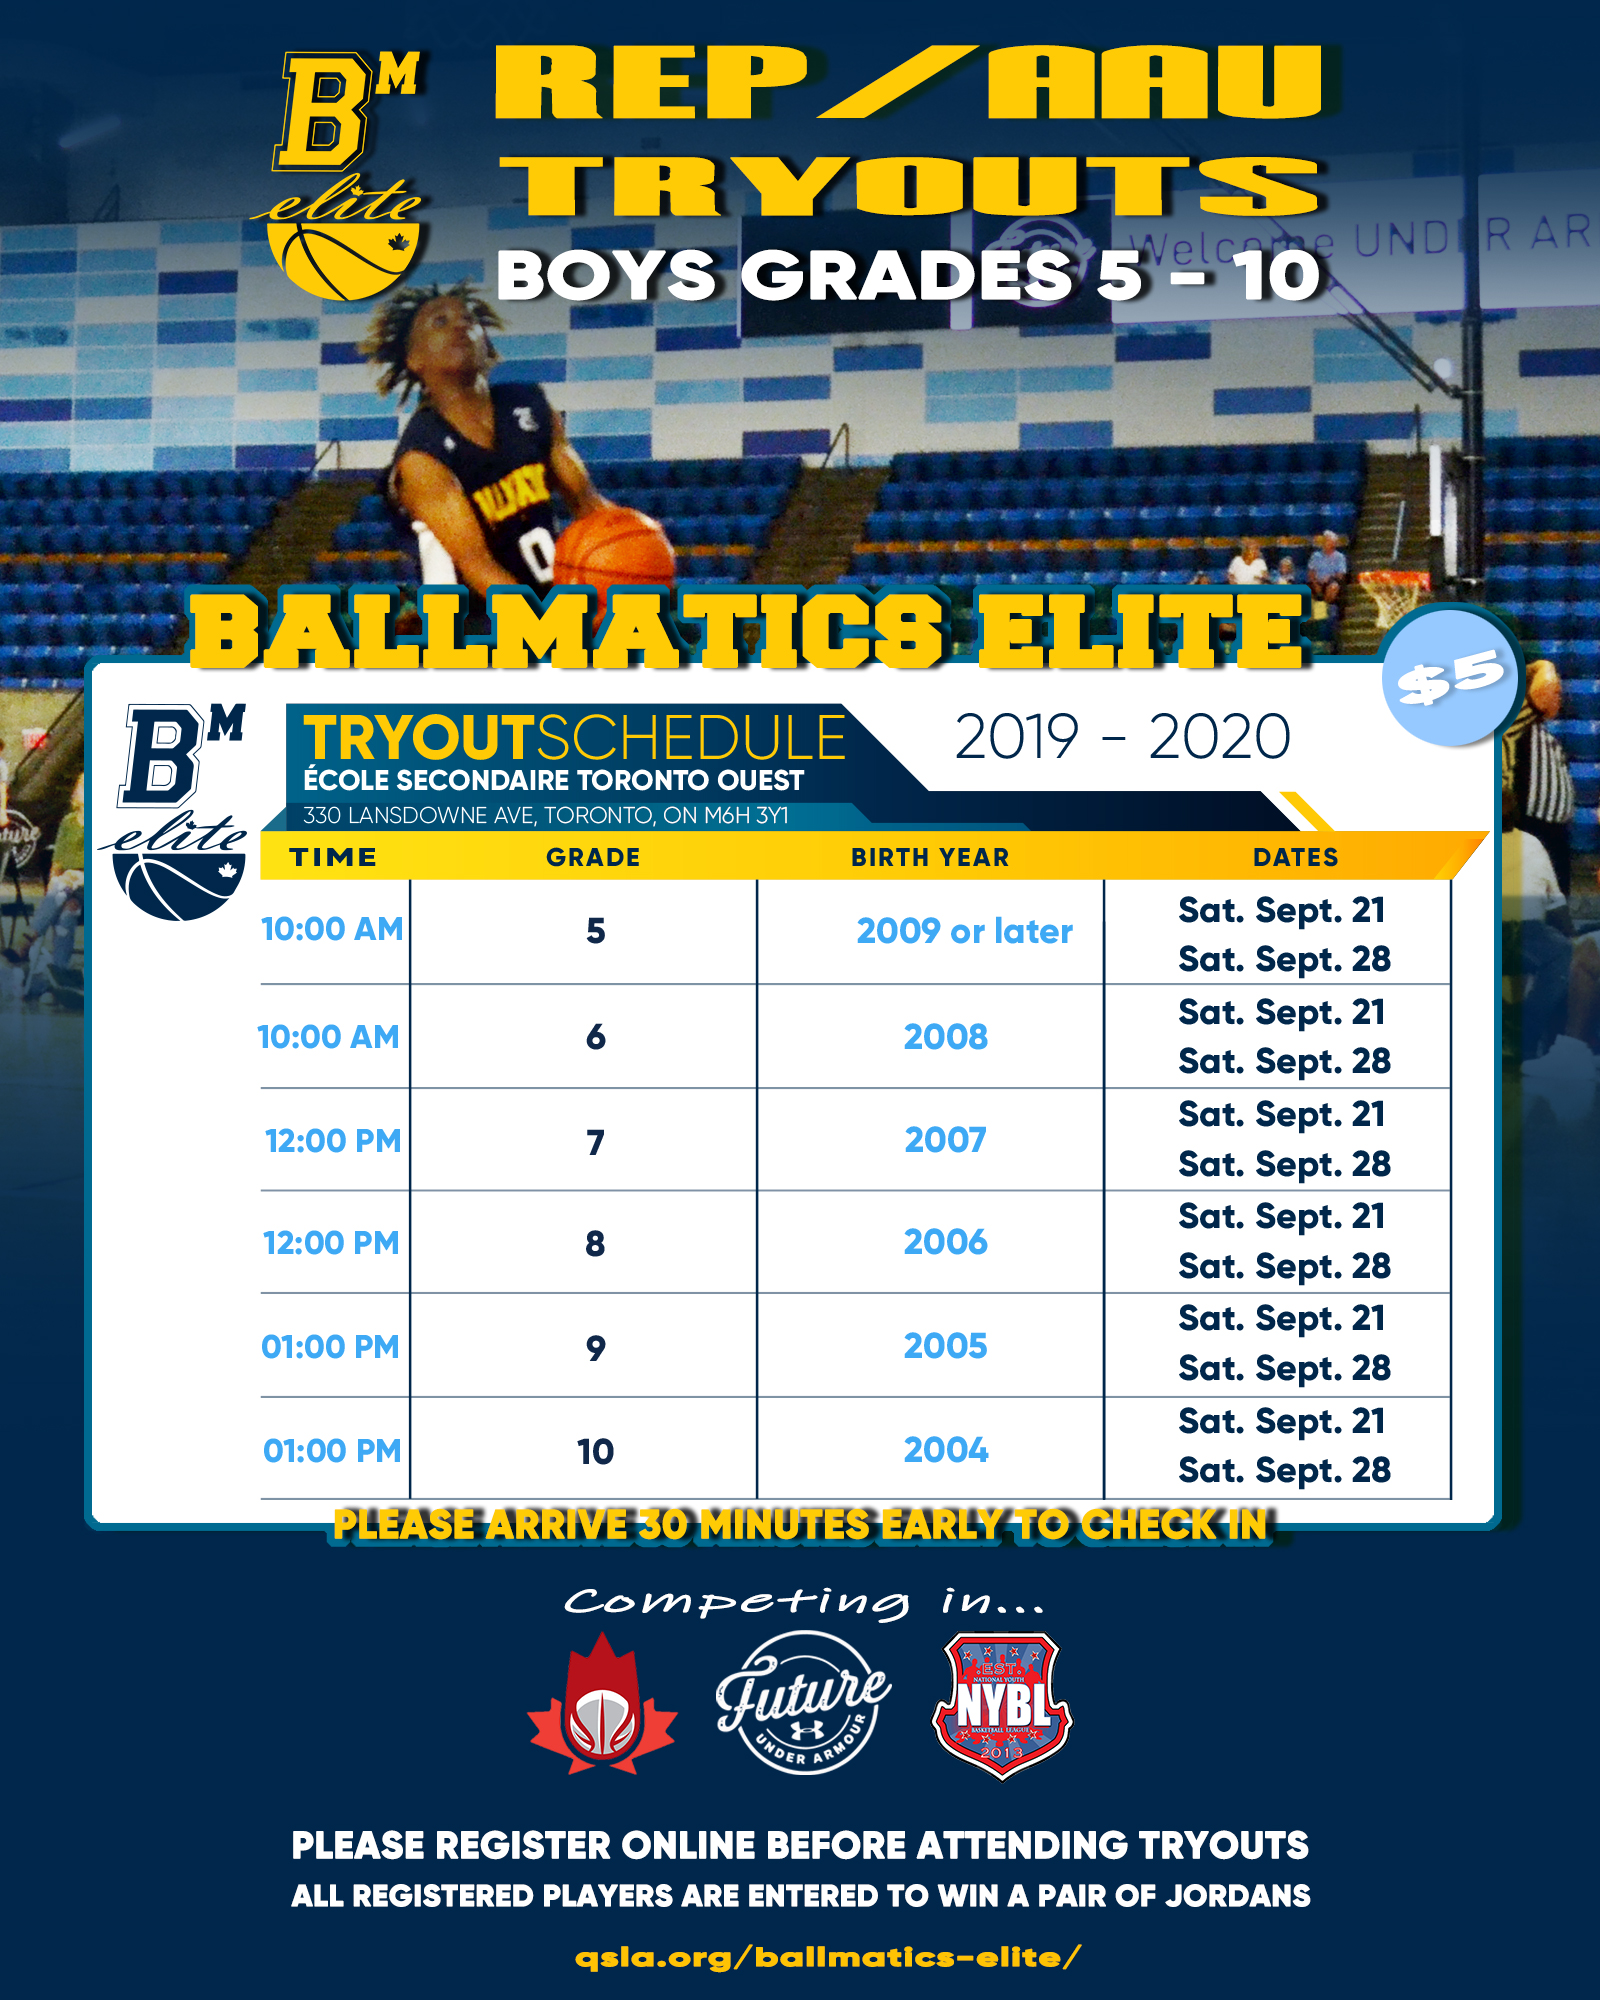 REP AAU Basketball Tryouts - BallMatics Elite Tryout Schedule